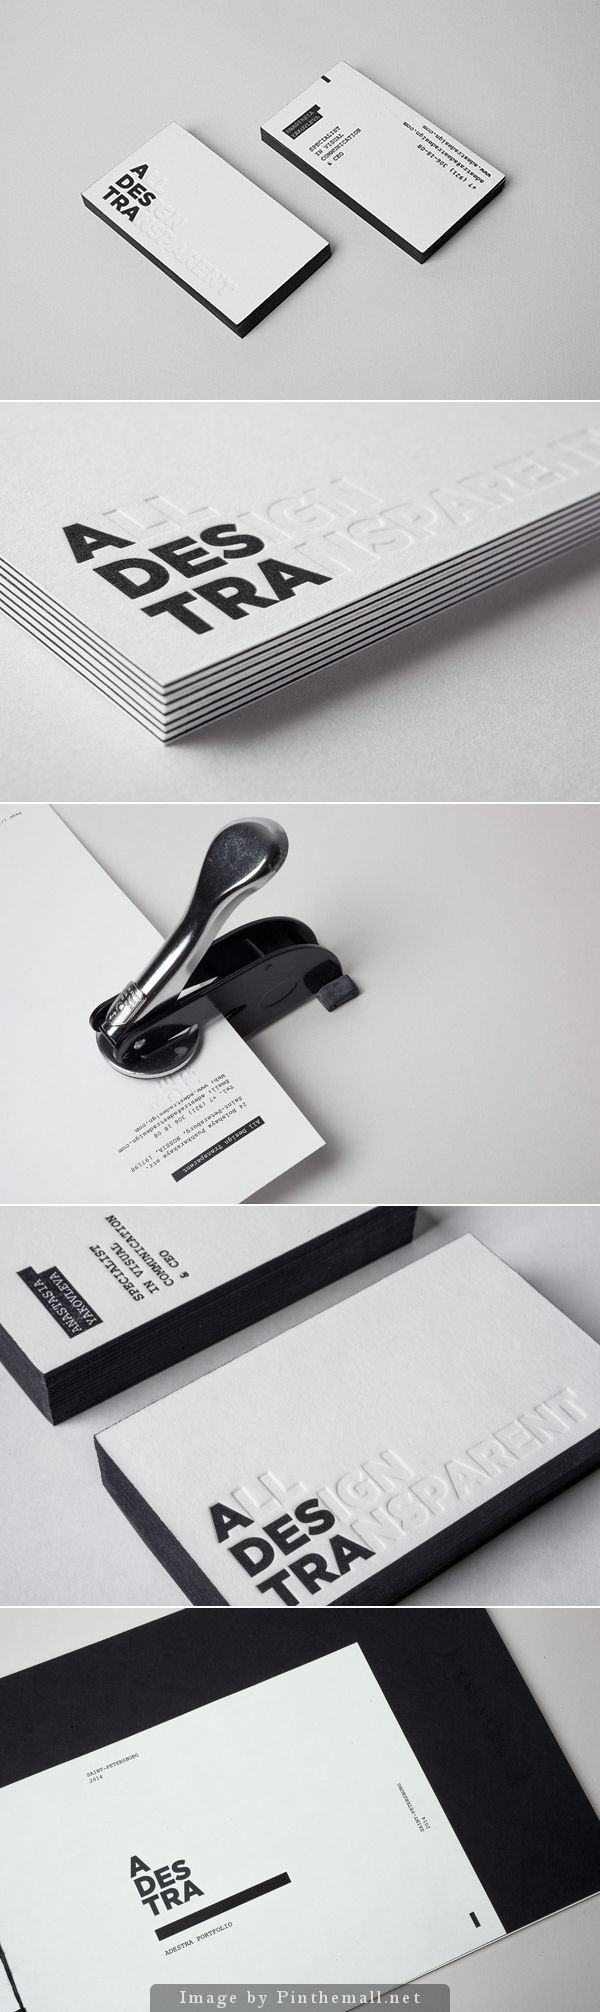 186 Best Transparent Business Cards Arc Reactions Images By Arc